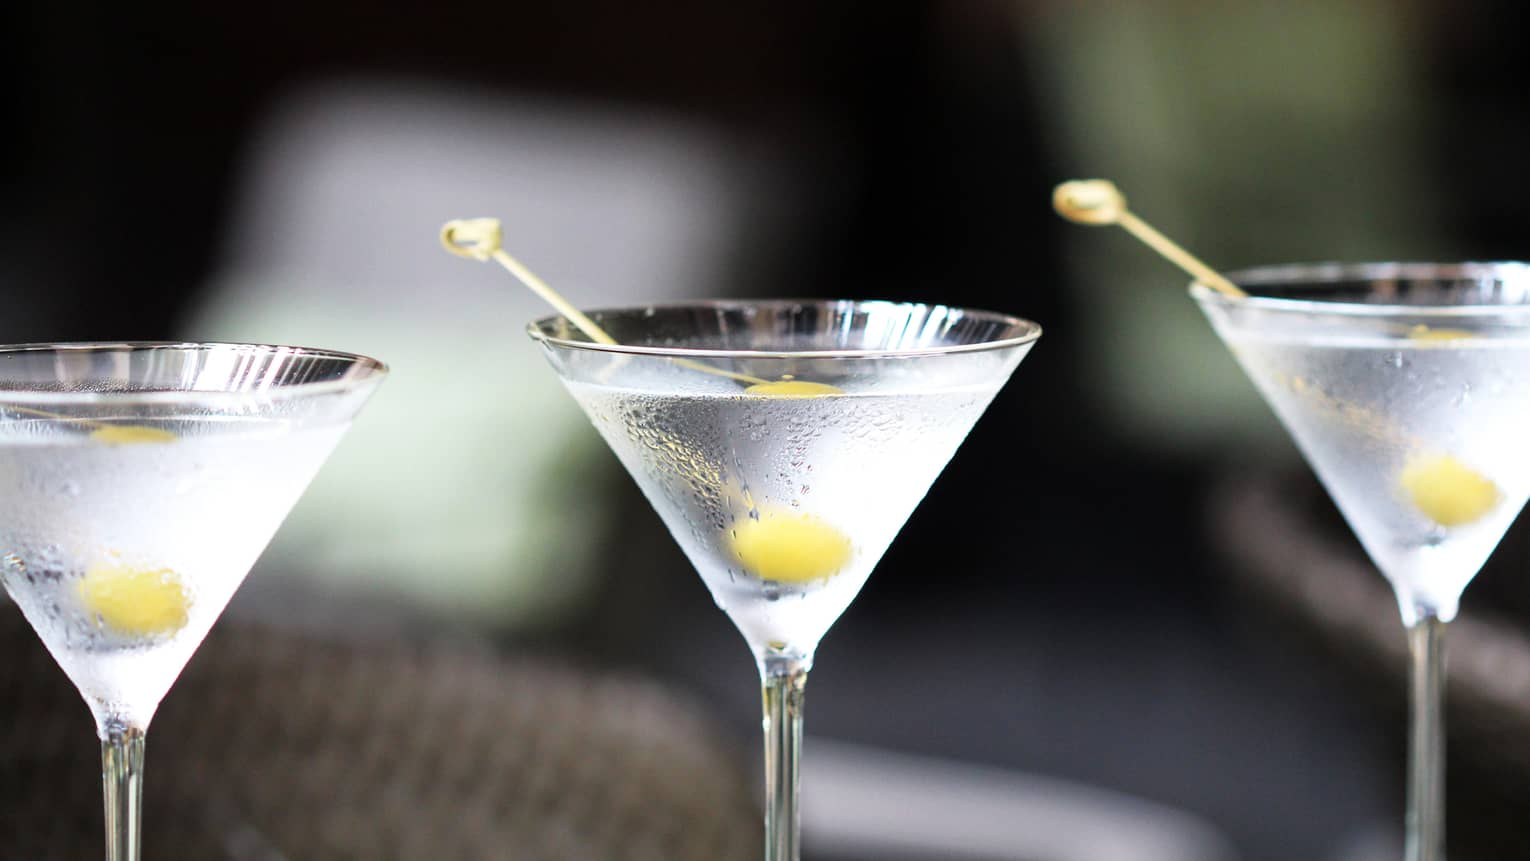 Close-up of row of vodka martinis in glasses with olive garnish on toothpicks